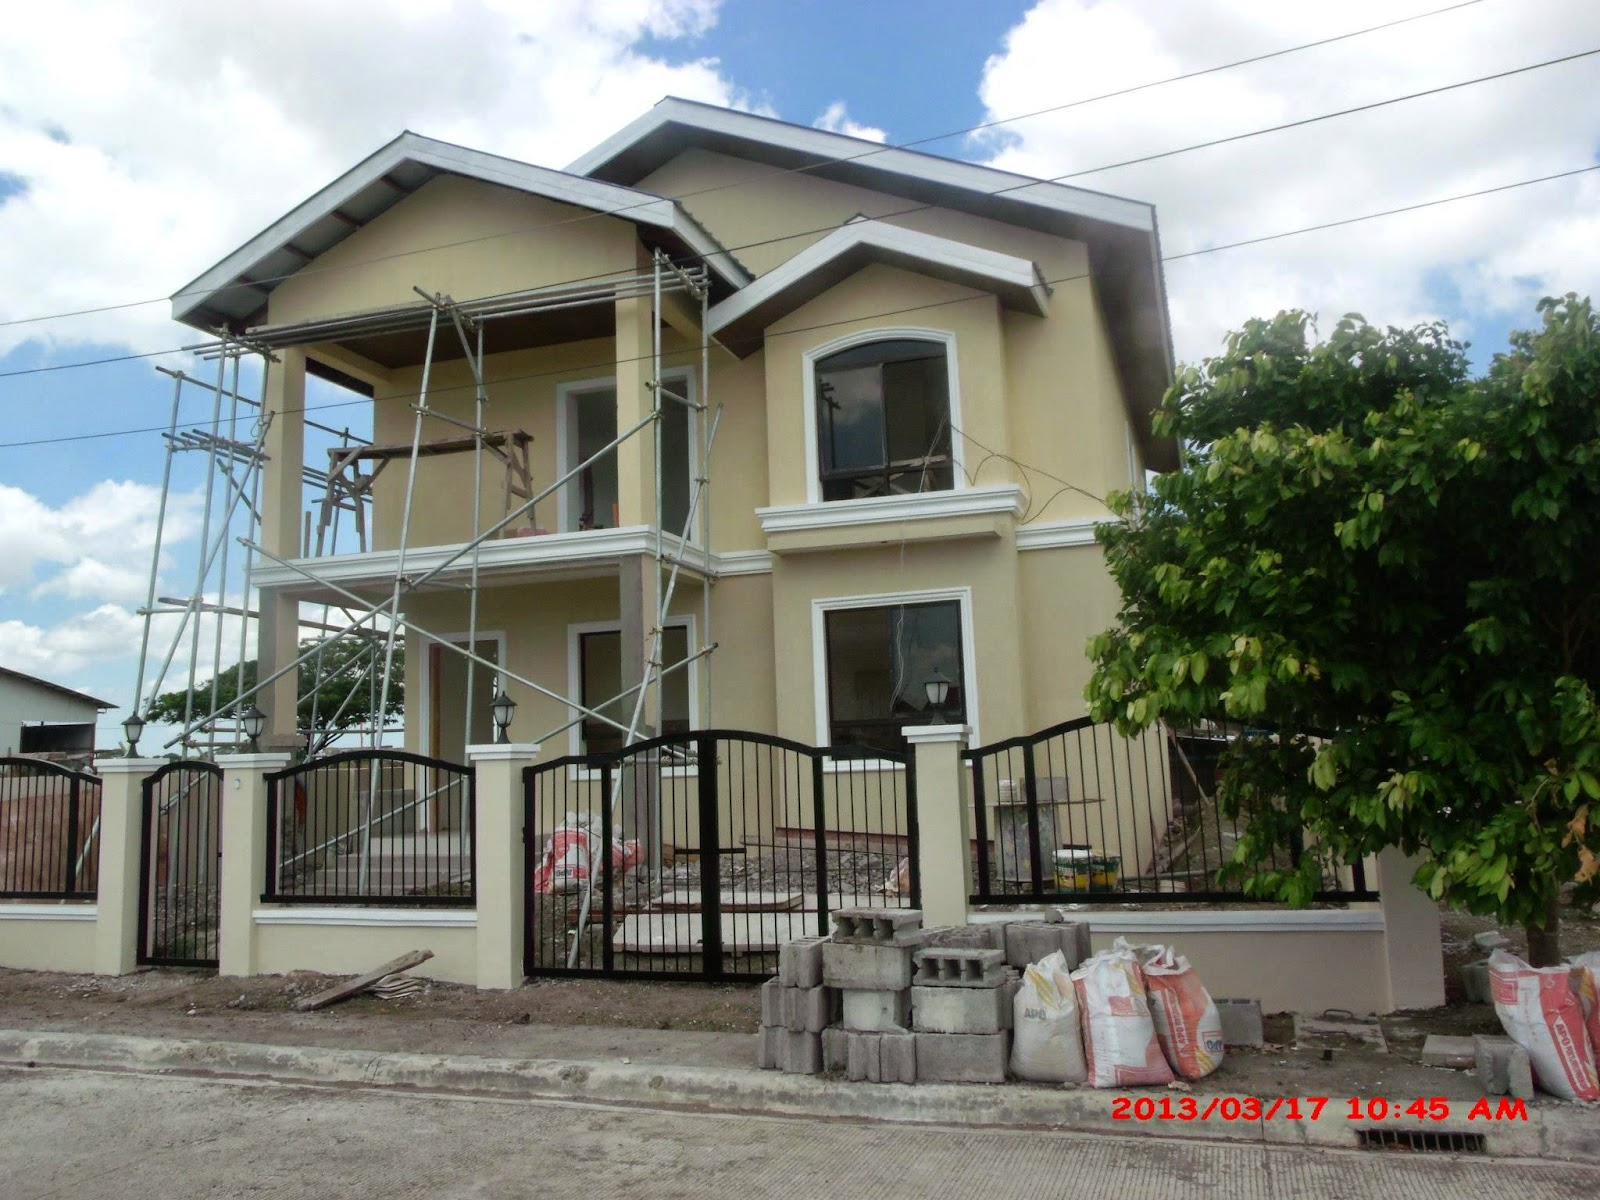 Savannah trails house construction project in oton iloilo for Simple house design